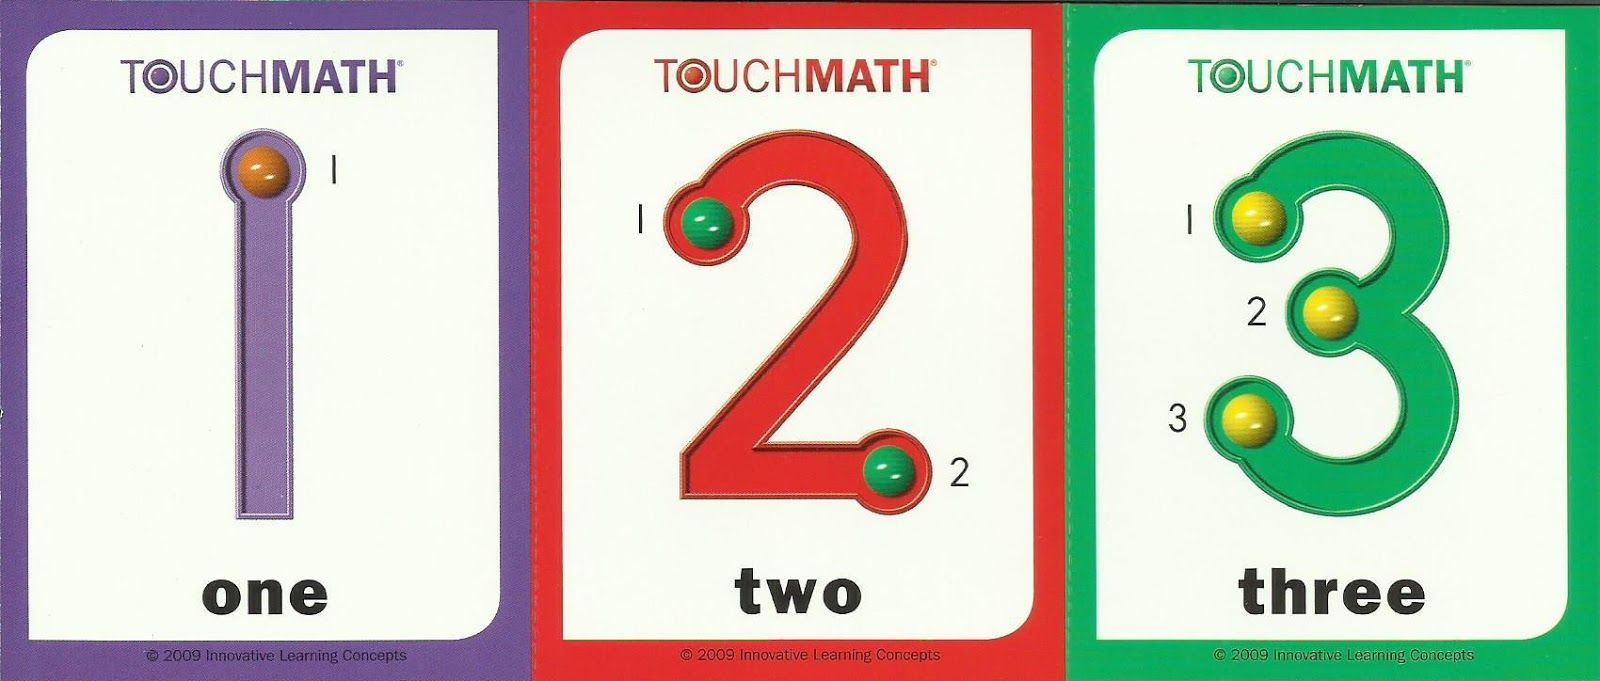 Touch Math Worksheets Printable Touch Math Touch Math Worksheets Math Addition Worksheets [ 681 x 1600 Pixel ]